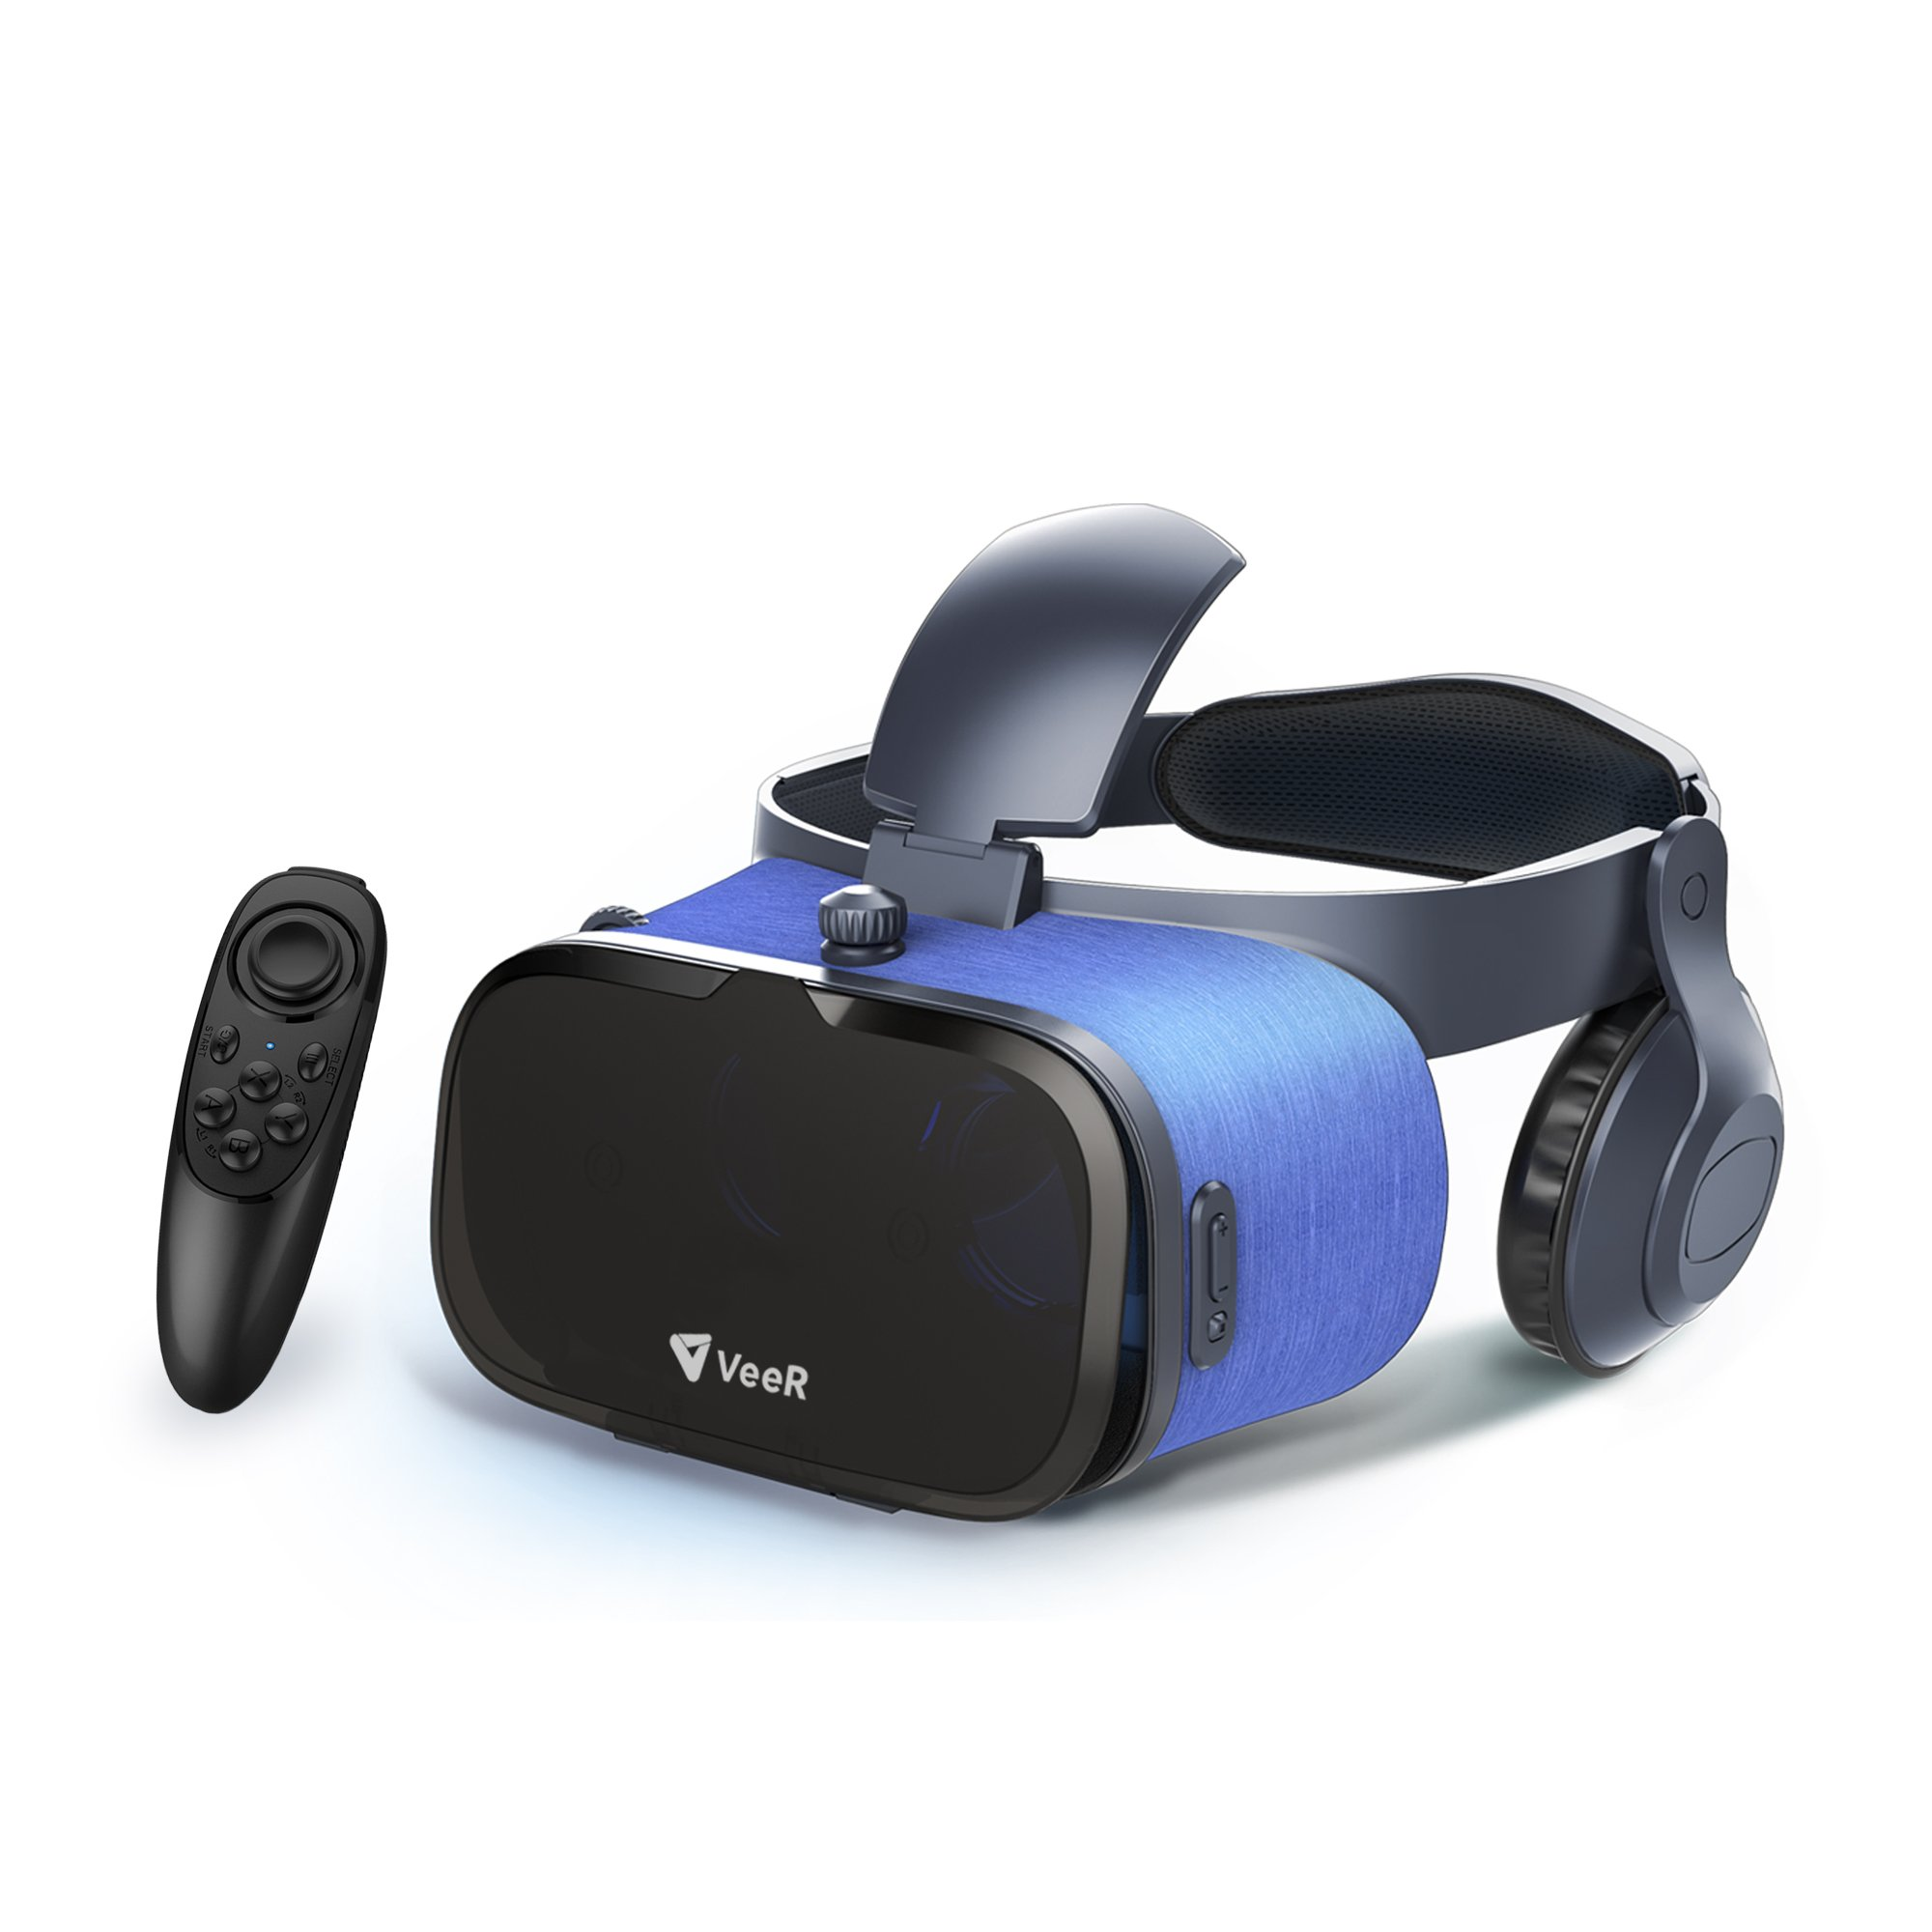 VeeR OASIS VR Headset with VR remote, 3D Virtual Reality Goggles with VR Controller, Compatible with 4-6.2 inches iOS/Android Smartphones, Stereo Headphones, Light Body, Eye Protection Mechanisms